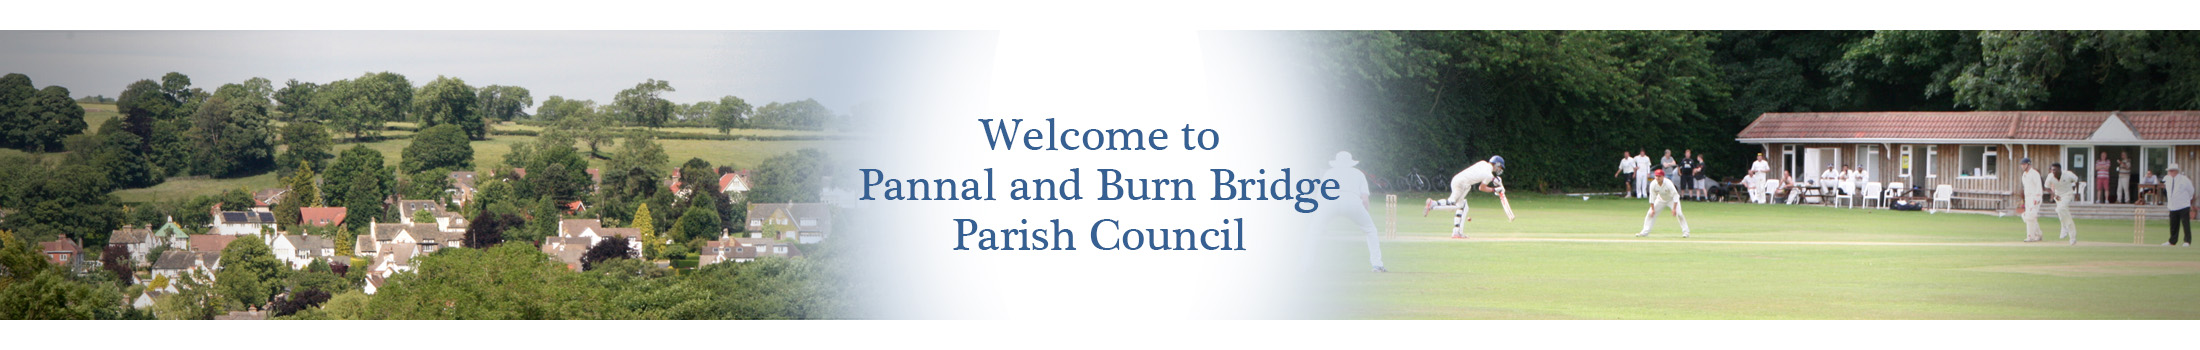 Header Image for Pannal and Burn Bridge Parish Council